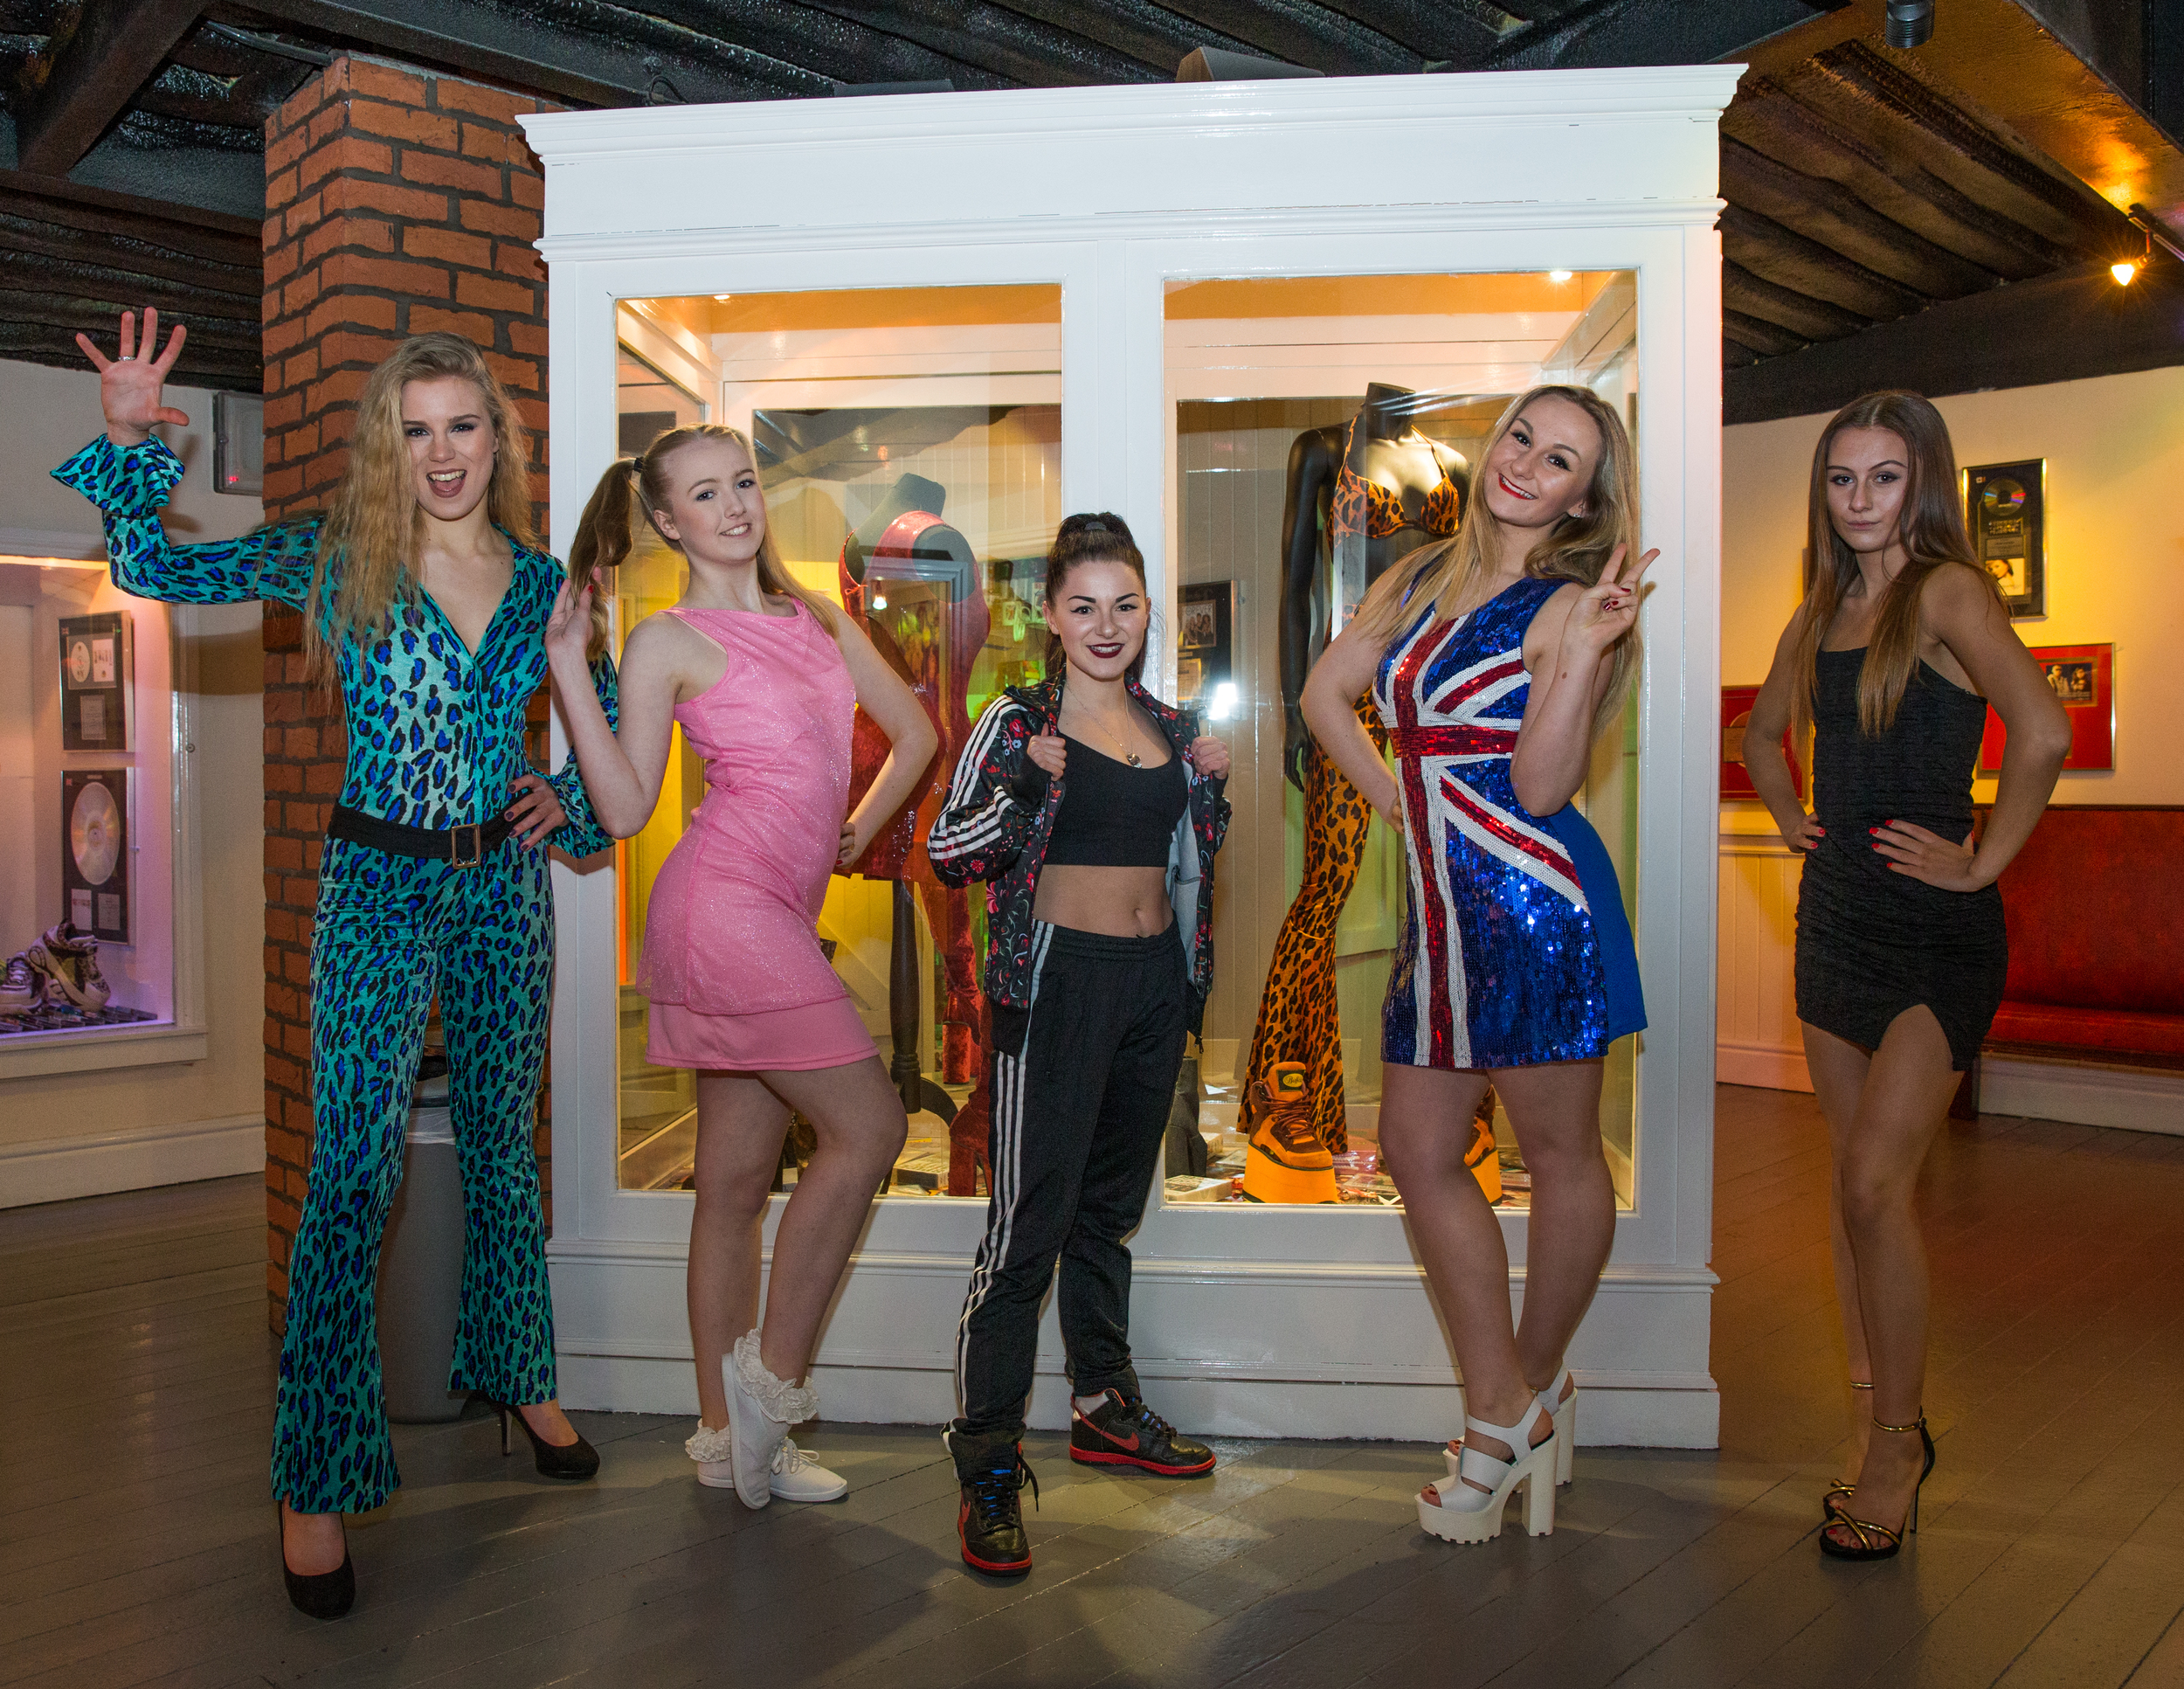 36. Spice Girls Exhibition at Ripley's Blackpool. Photo Credit - Steve Lee, 2016.jpg